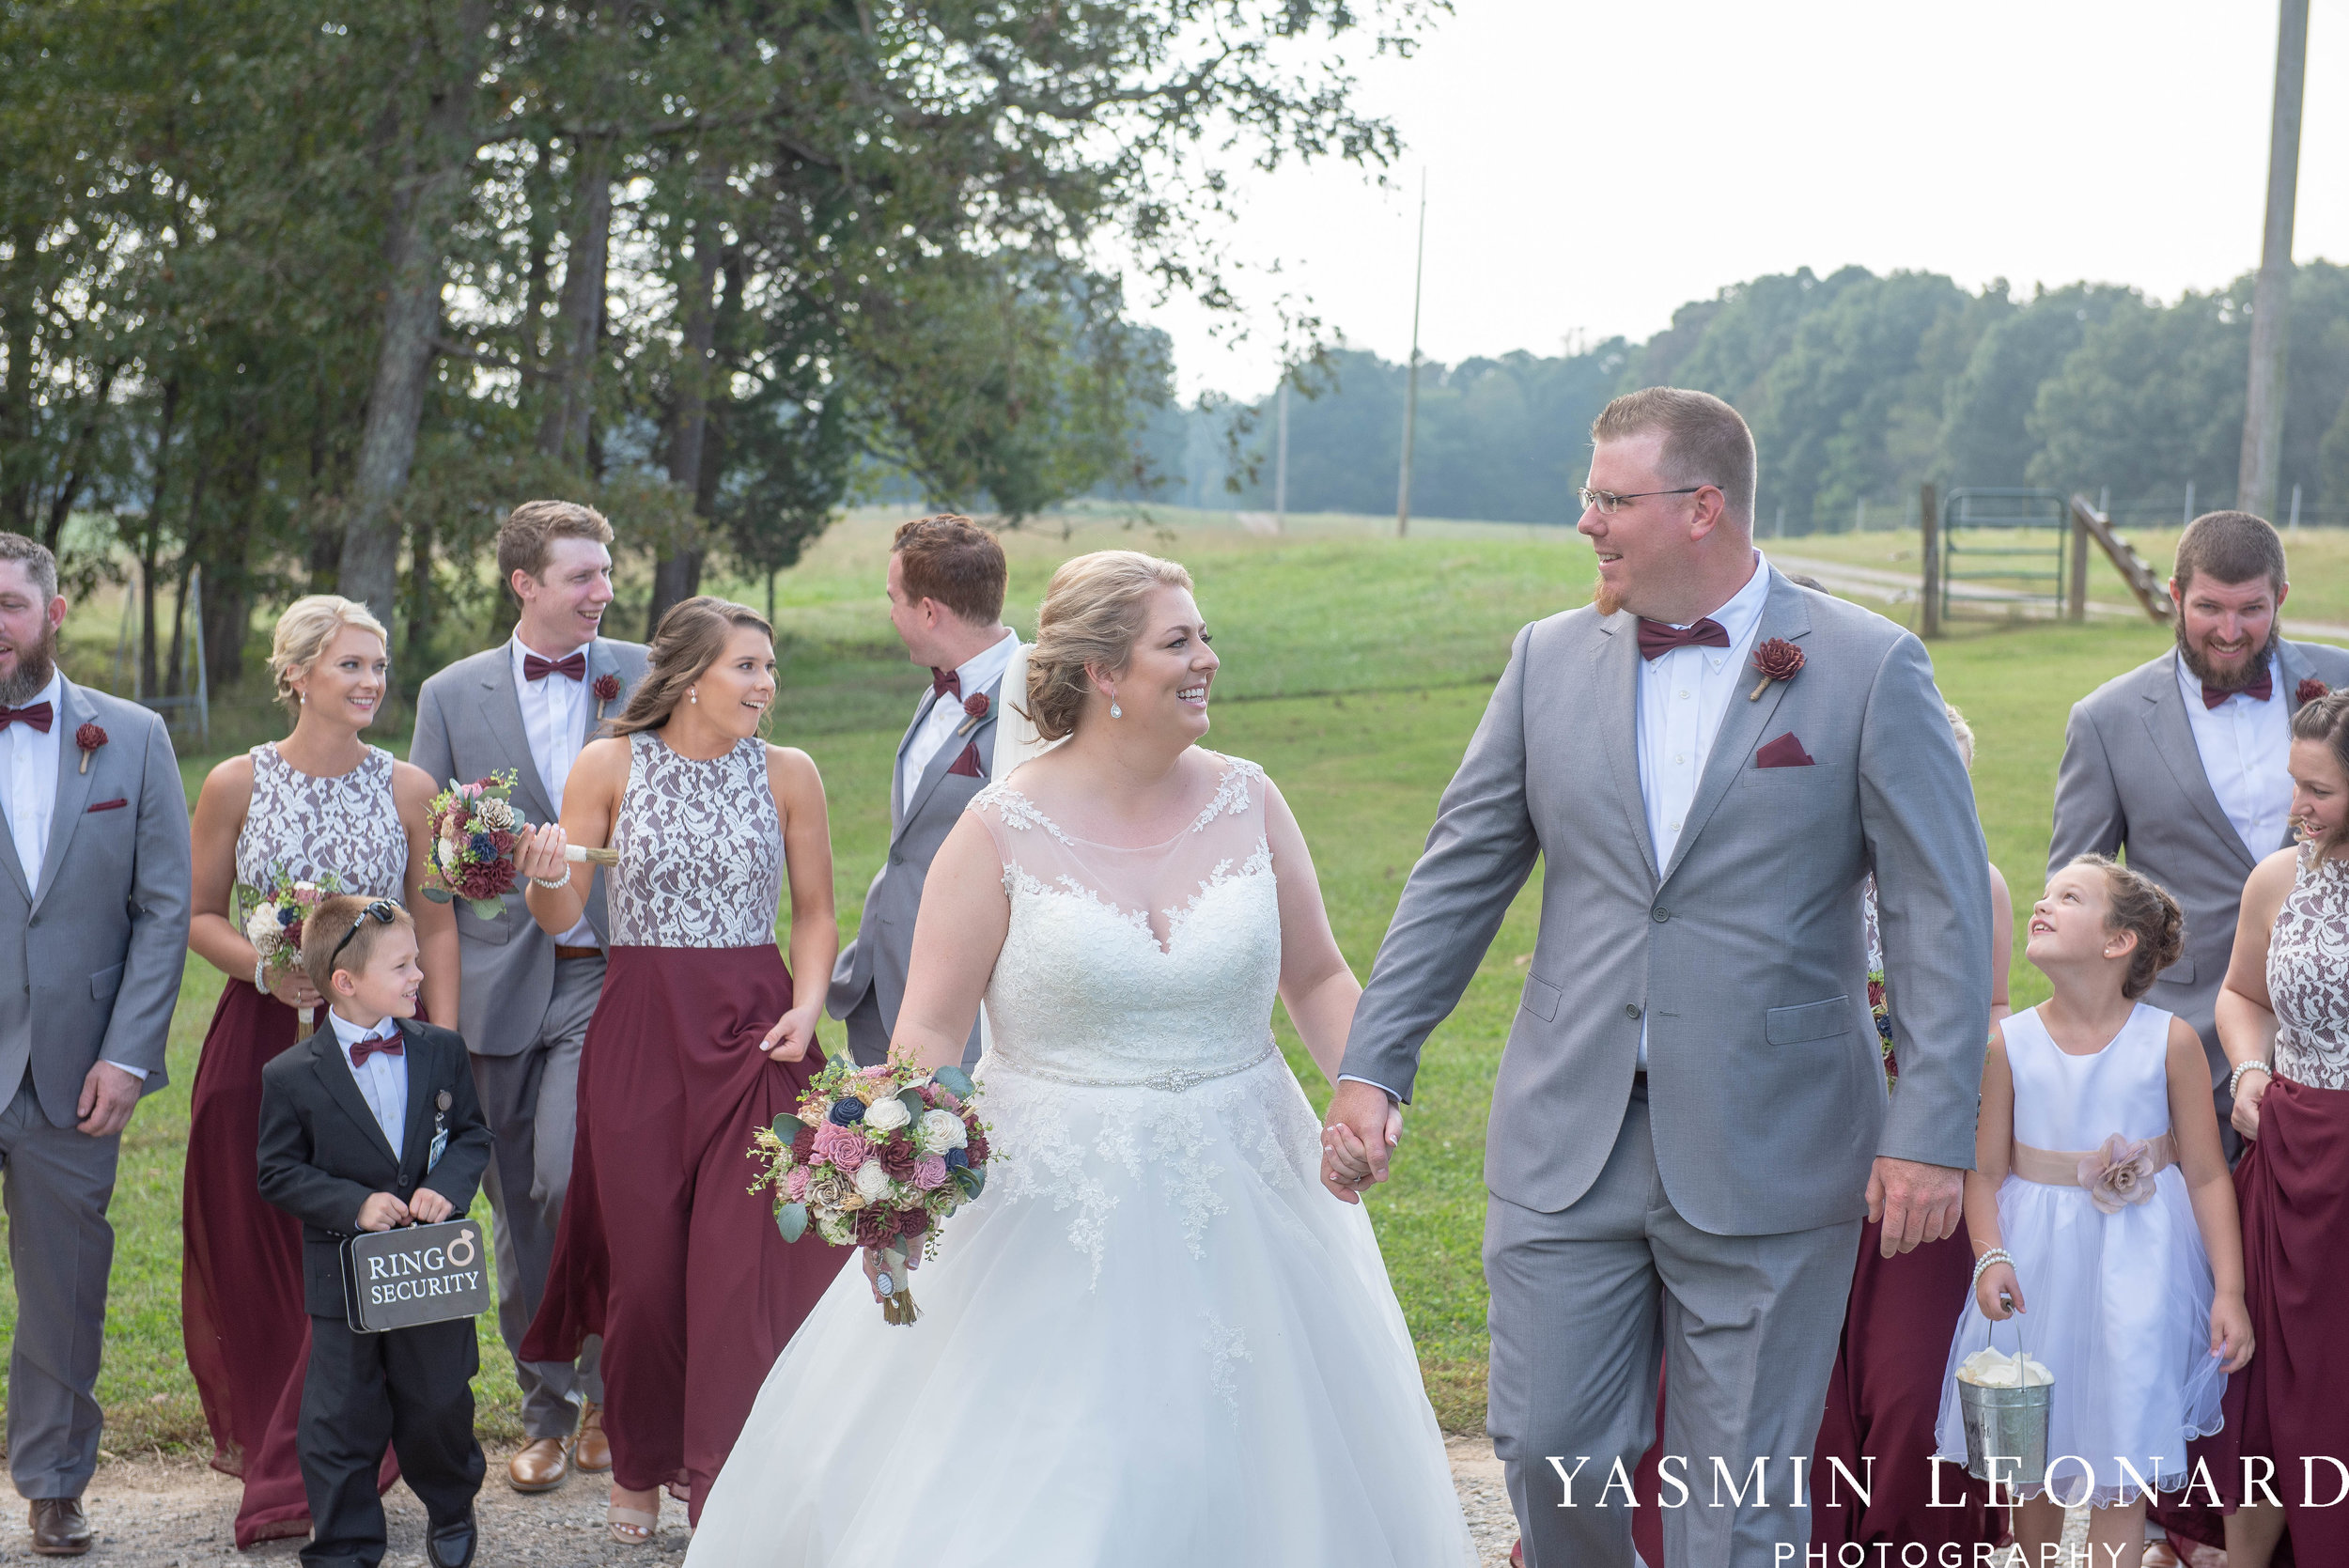 Danner Farms - NC Wedding Venues - NC Barns - Statesville NC - NC Wedding Photographer - High Point Wedding Photographer - Yasmin Leonard Photography-46.jpg